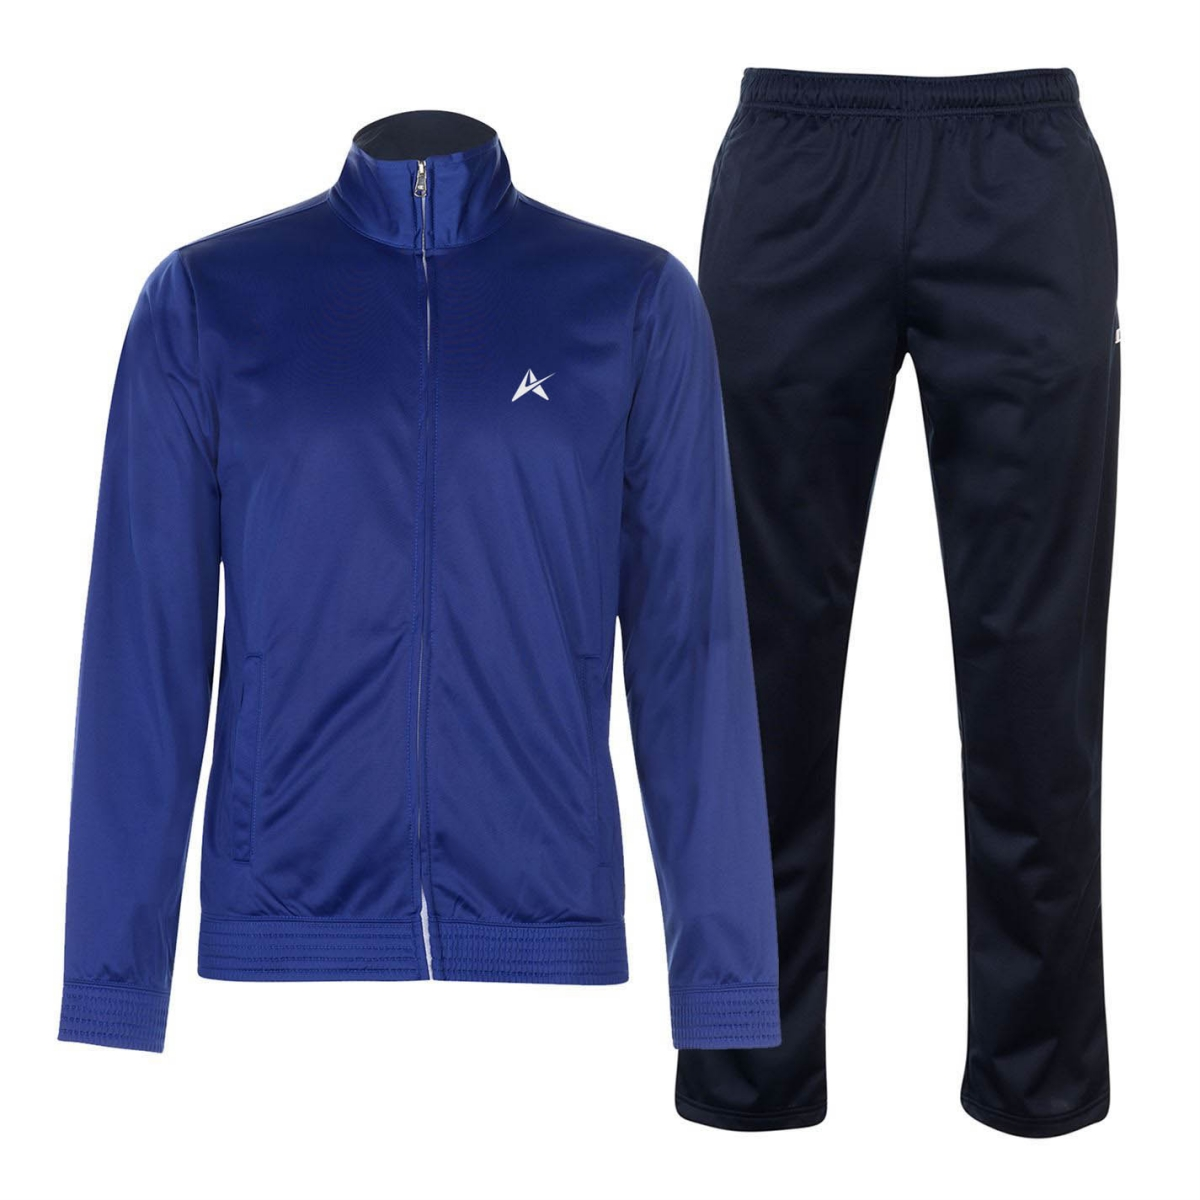 Men's Jogging Sports Suit Long Sleeve   A1-505